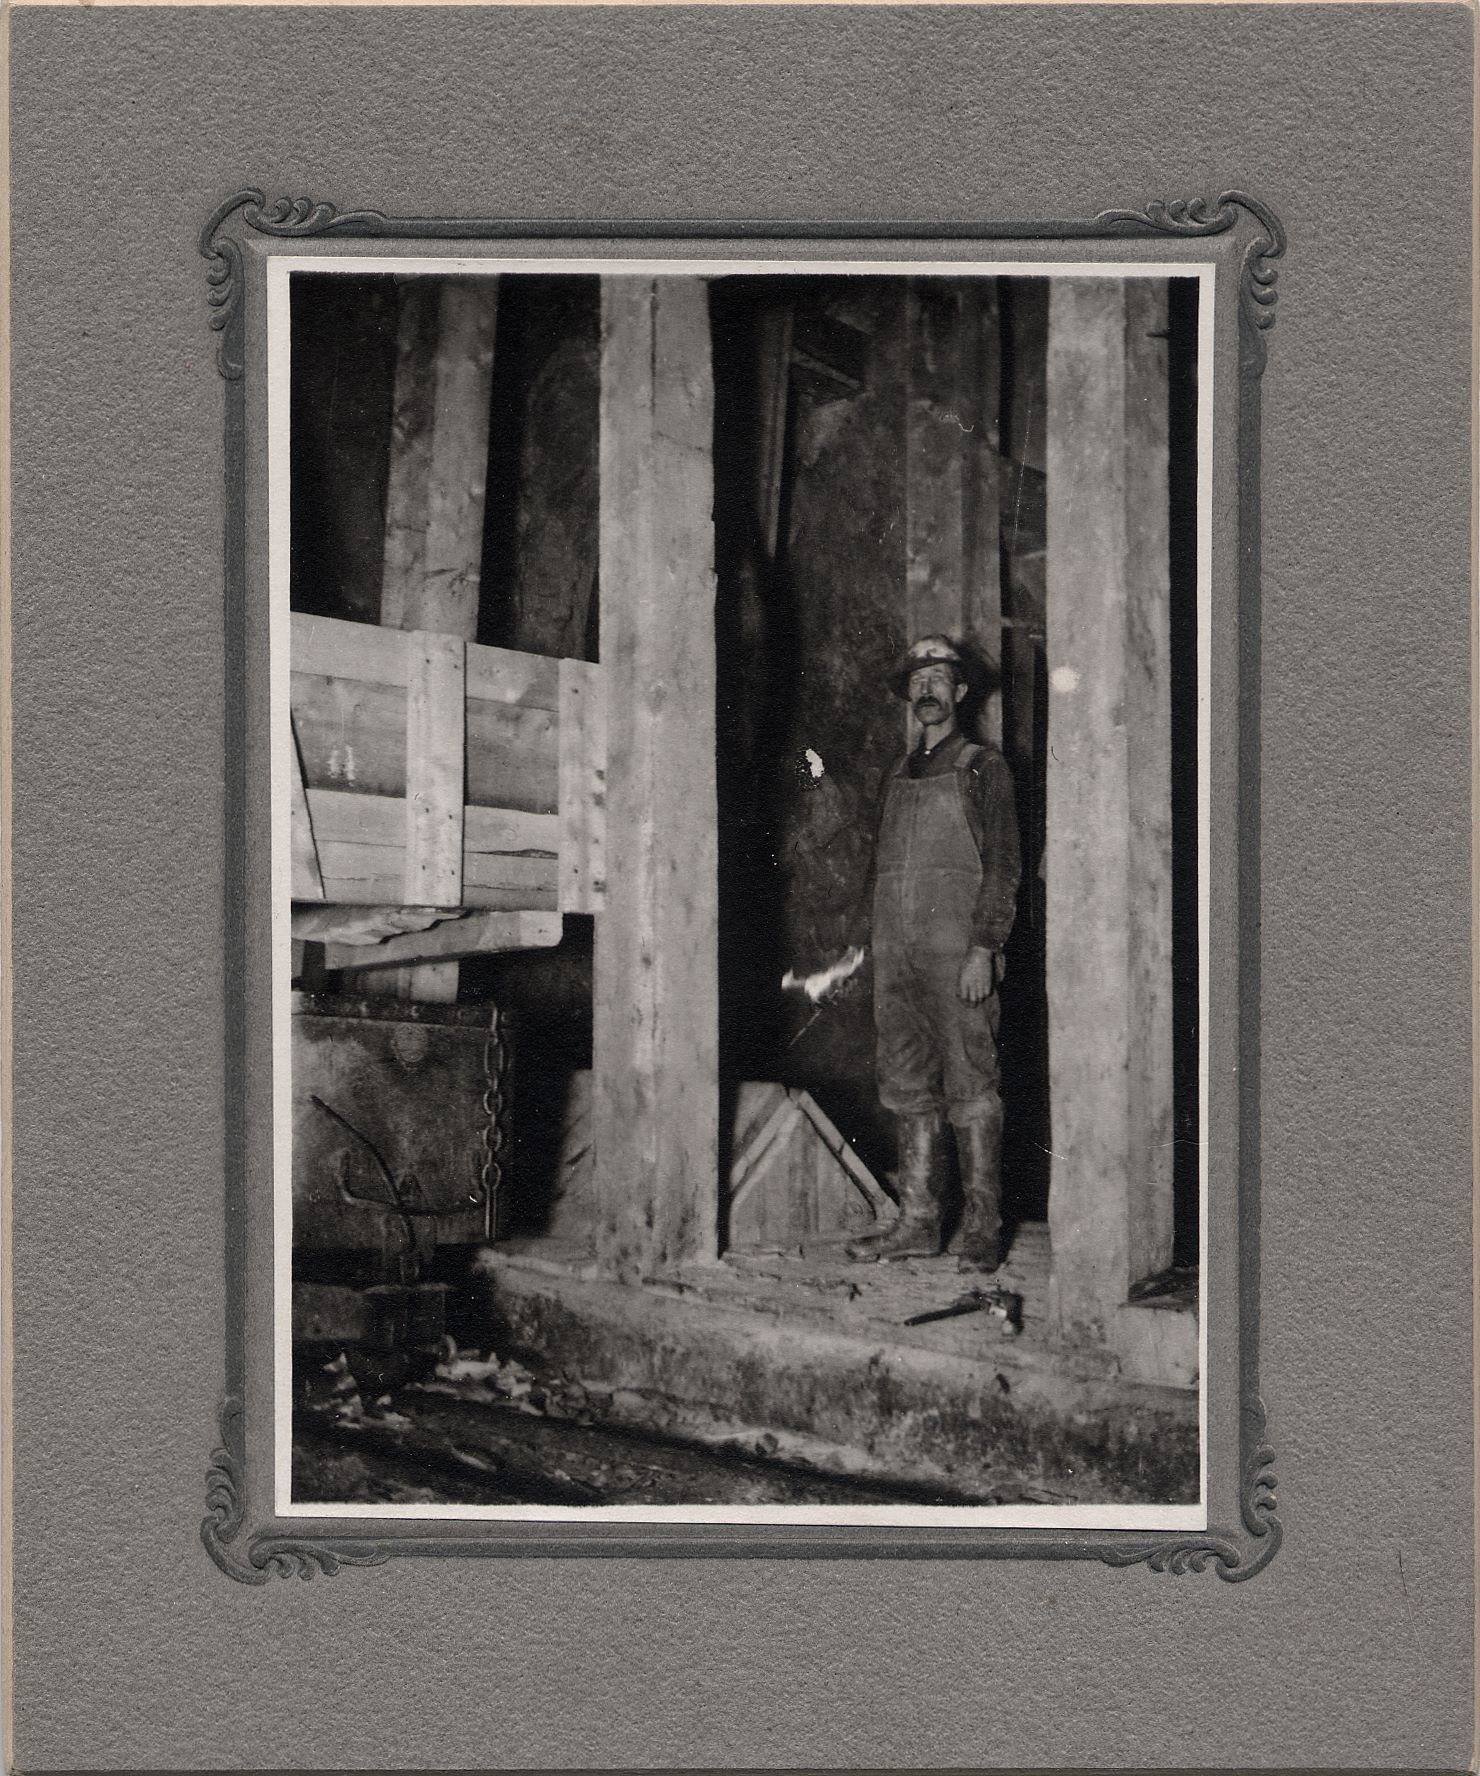 According to info from Steve Rush this is underground at the Gold Coin mine, and this photo came through him to me, from his late friend George Foott. It shows a miner underground at one of the levels in the mine, but all info I have is that it came from a family in Victor whose father worked at the Gold Coin. Not marked on backside or anything so it can possible be anywhere.